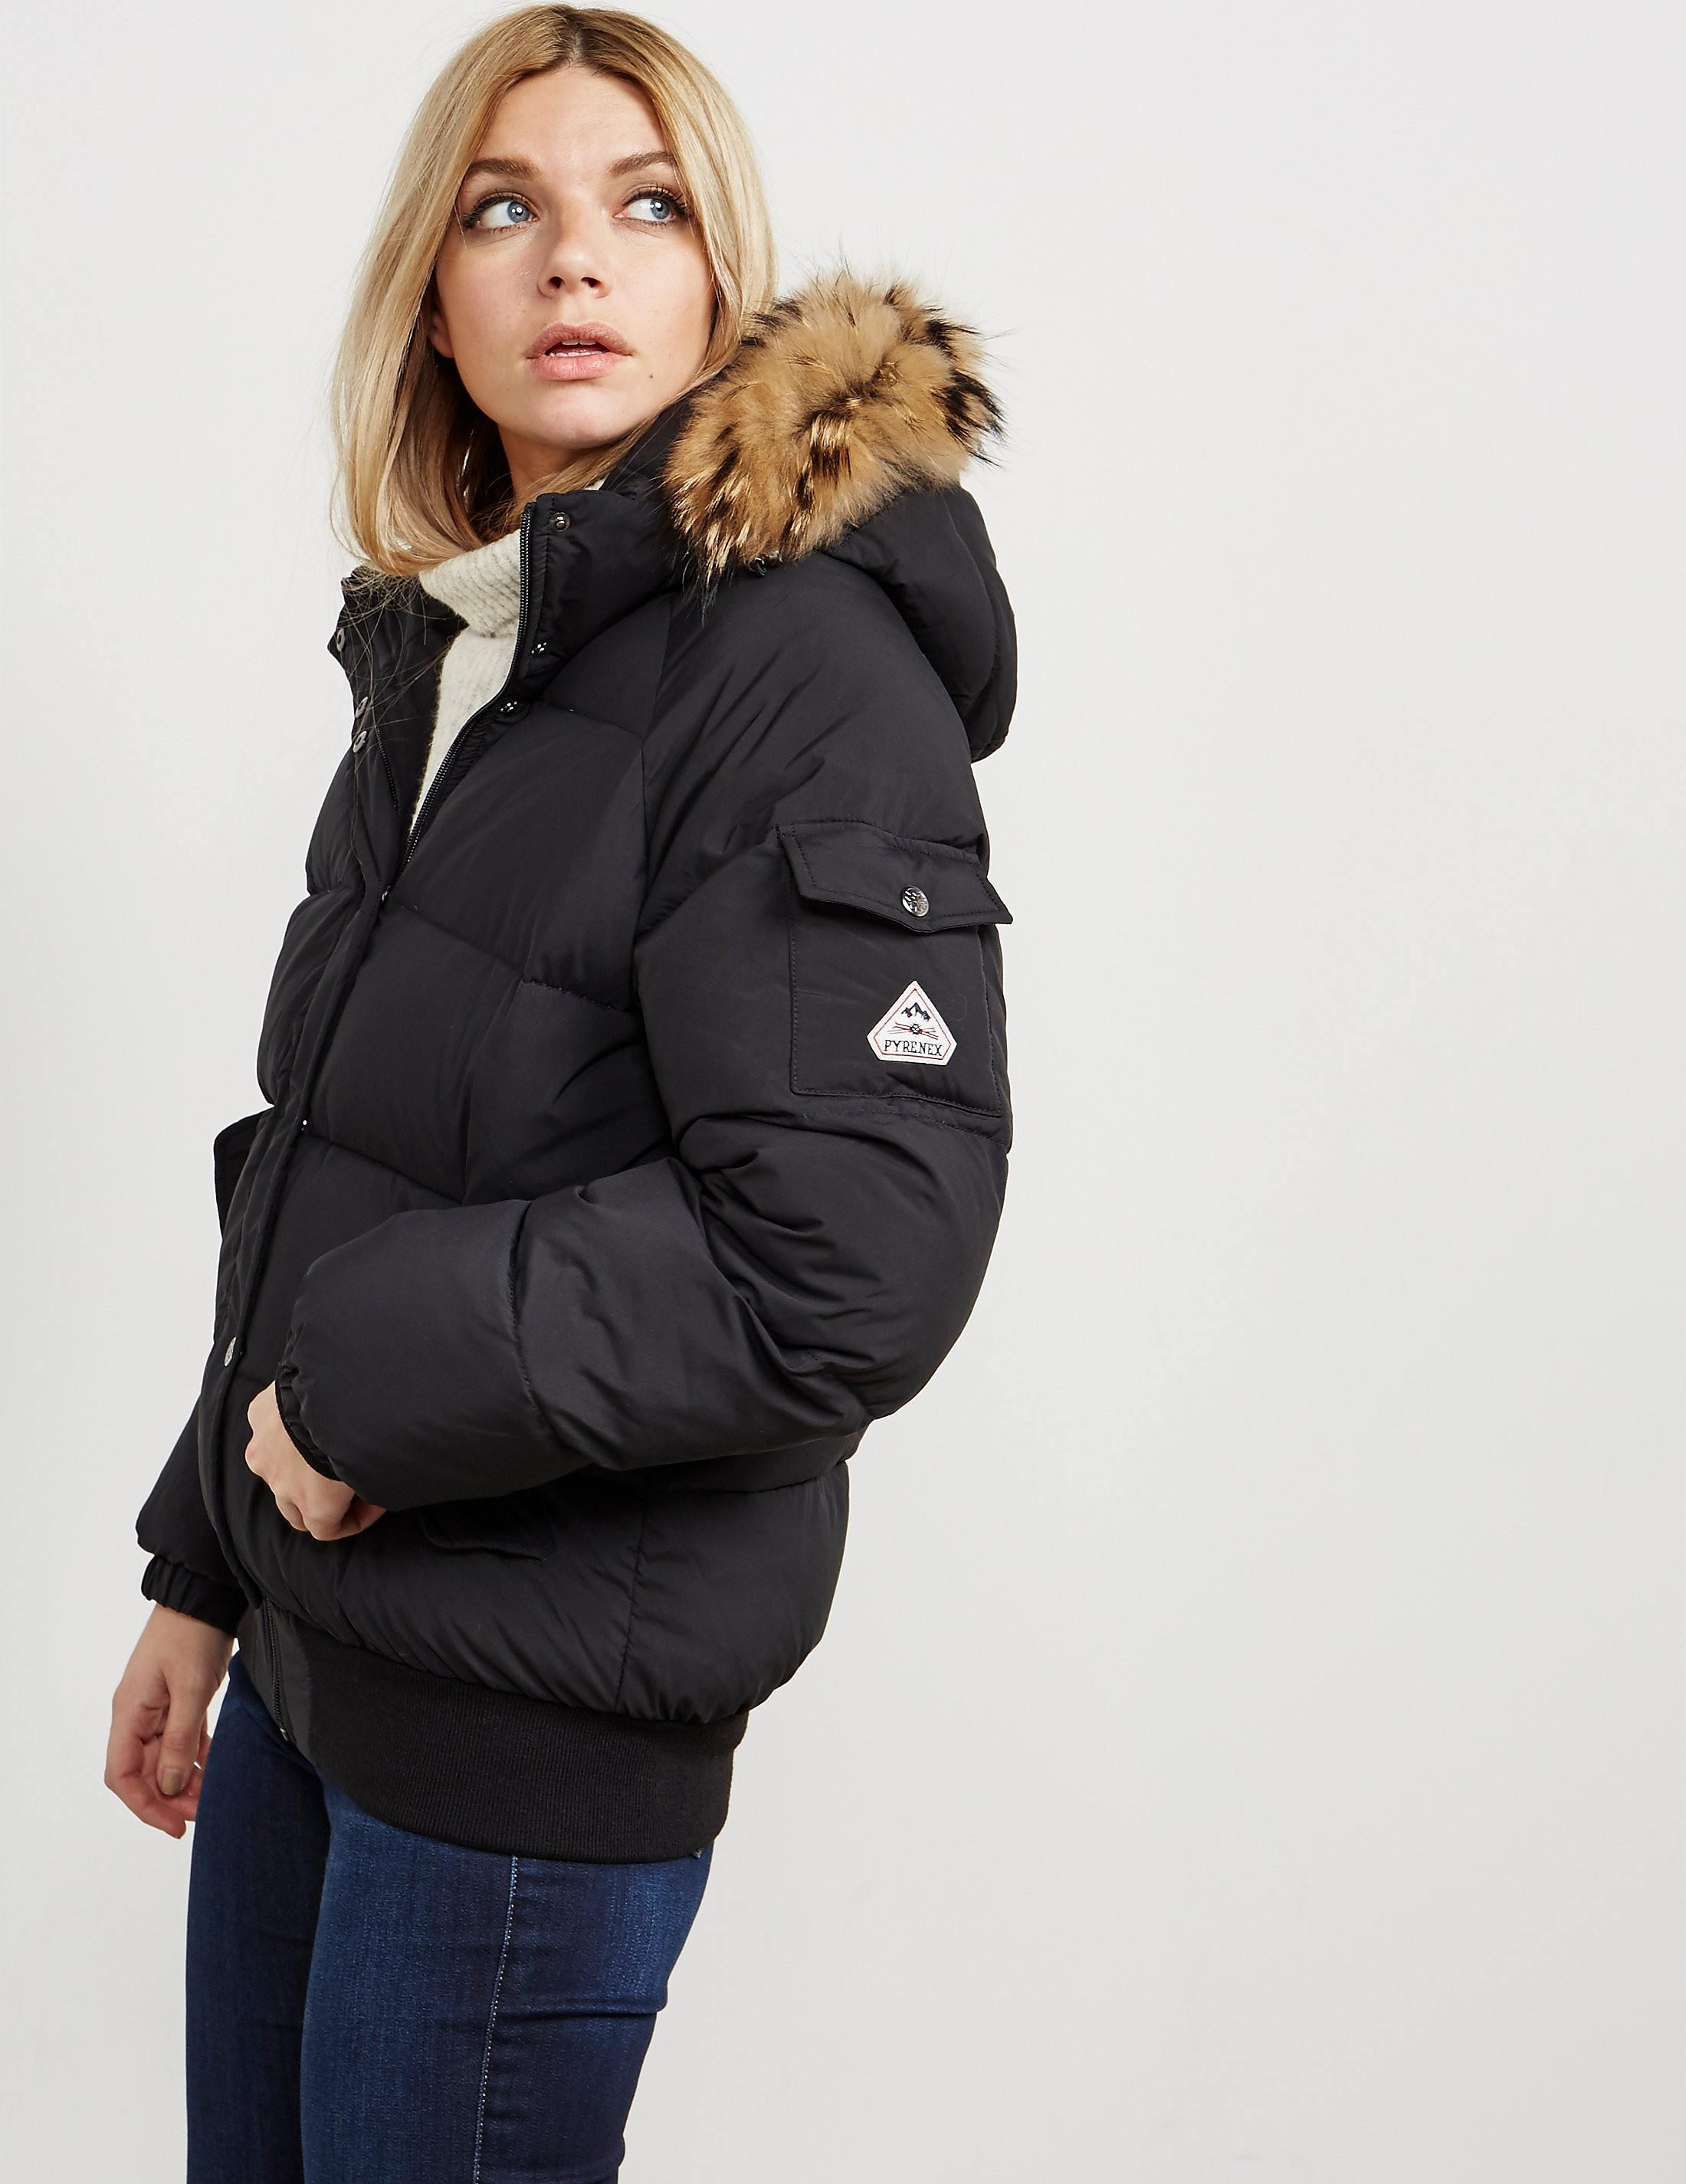 Pyrenex Aviator Jacket